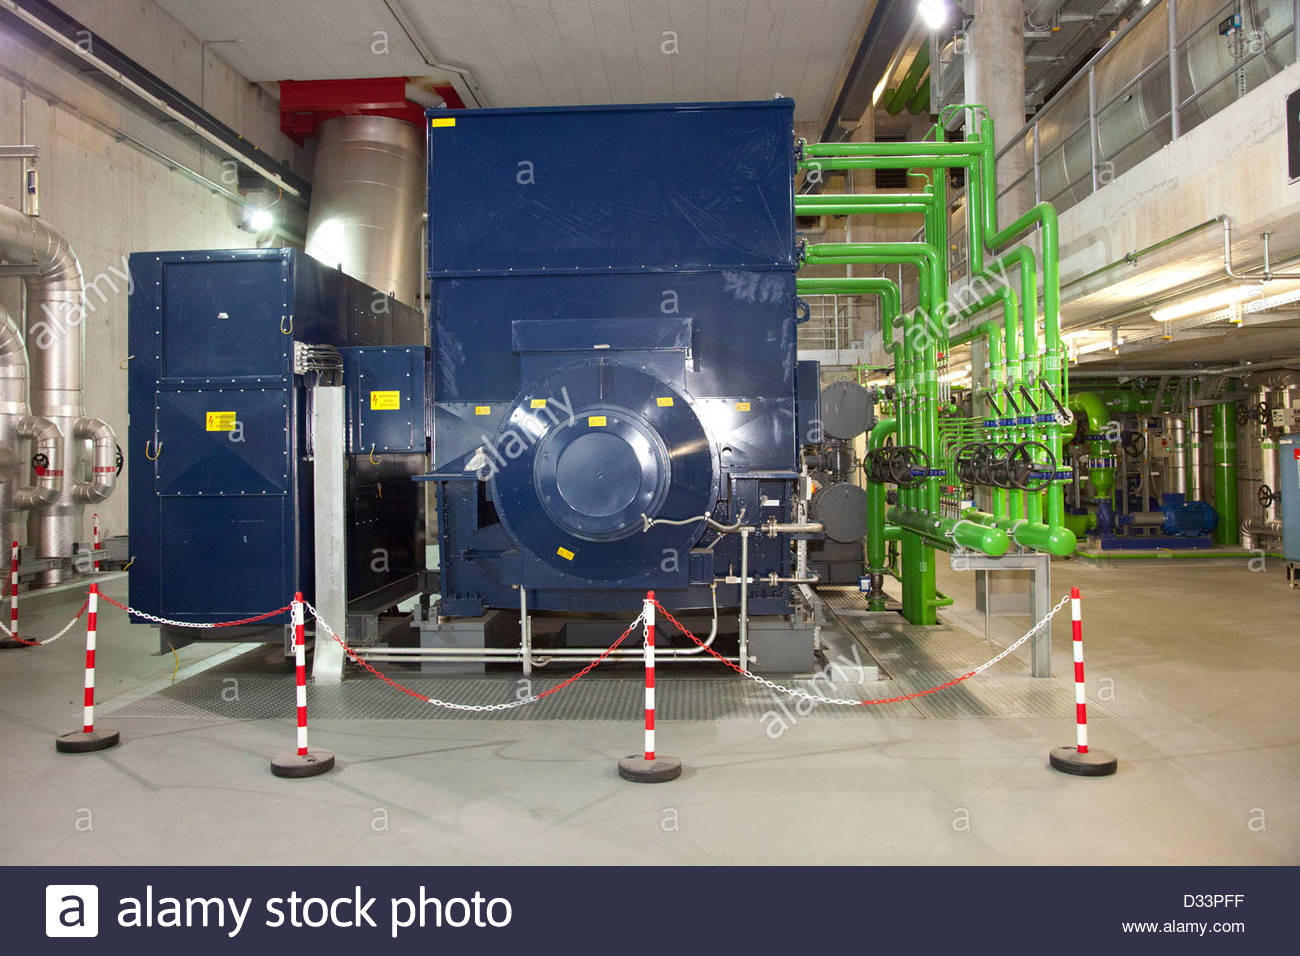 electric generator,tridel sa,plant for the thermal and electrical conversion of the garbage,lausanne,switzerland - Stock Image